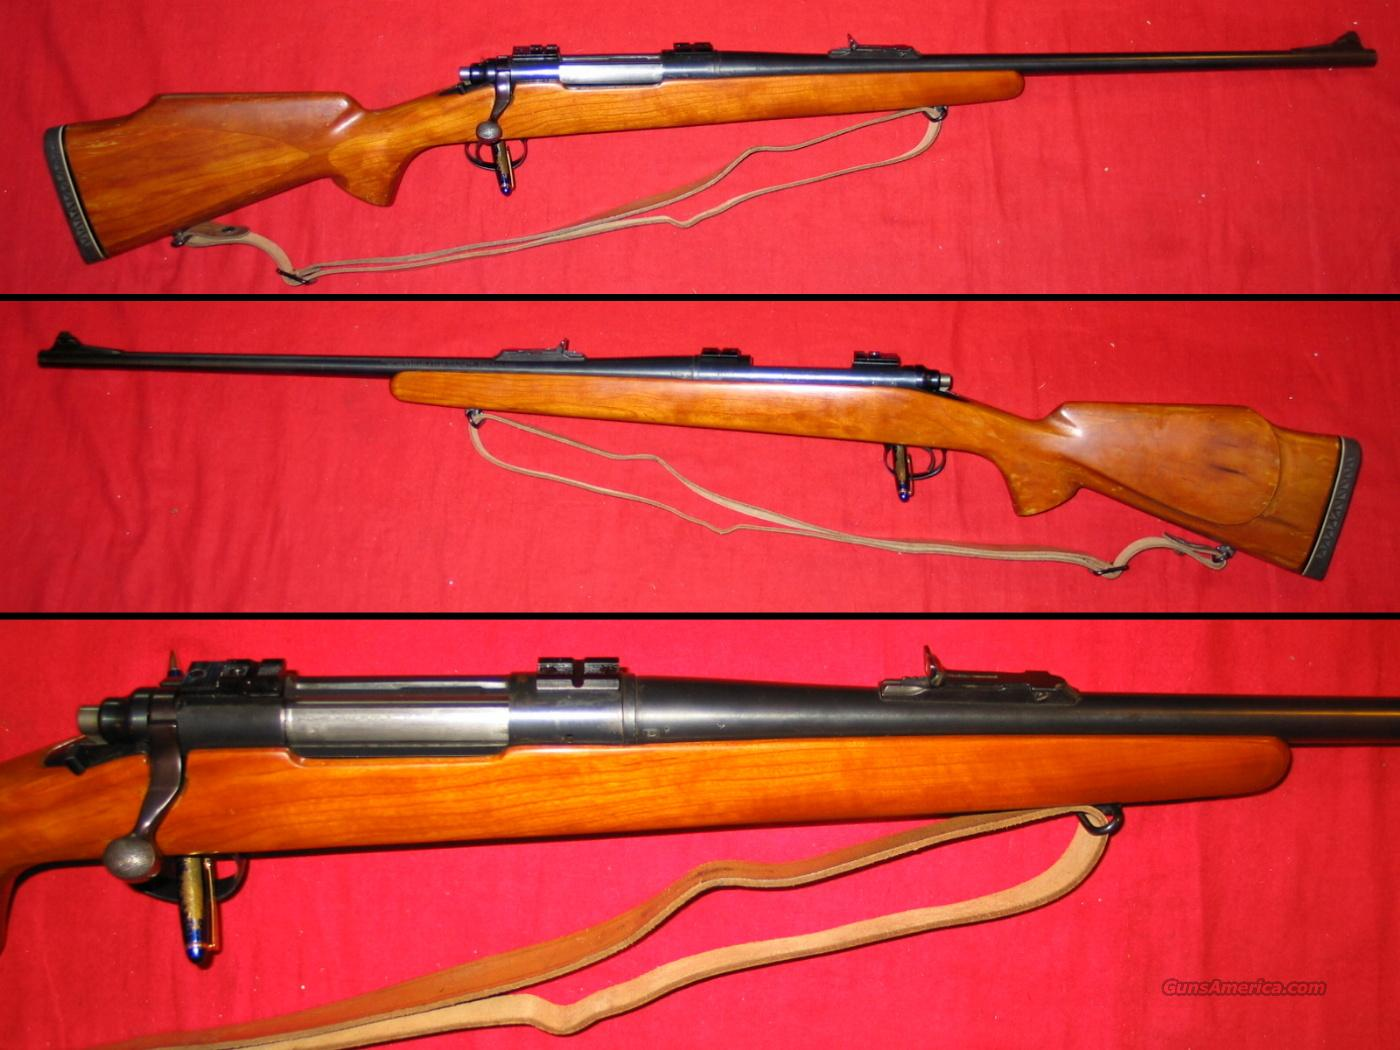 700 ADL 7mm Rem Mag - Early 1960's action  Guns > Rifles > Remington Rifles - Modern > Model 700 > Sporting